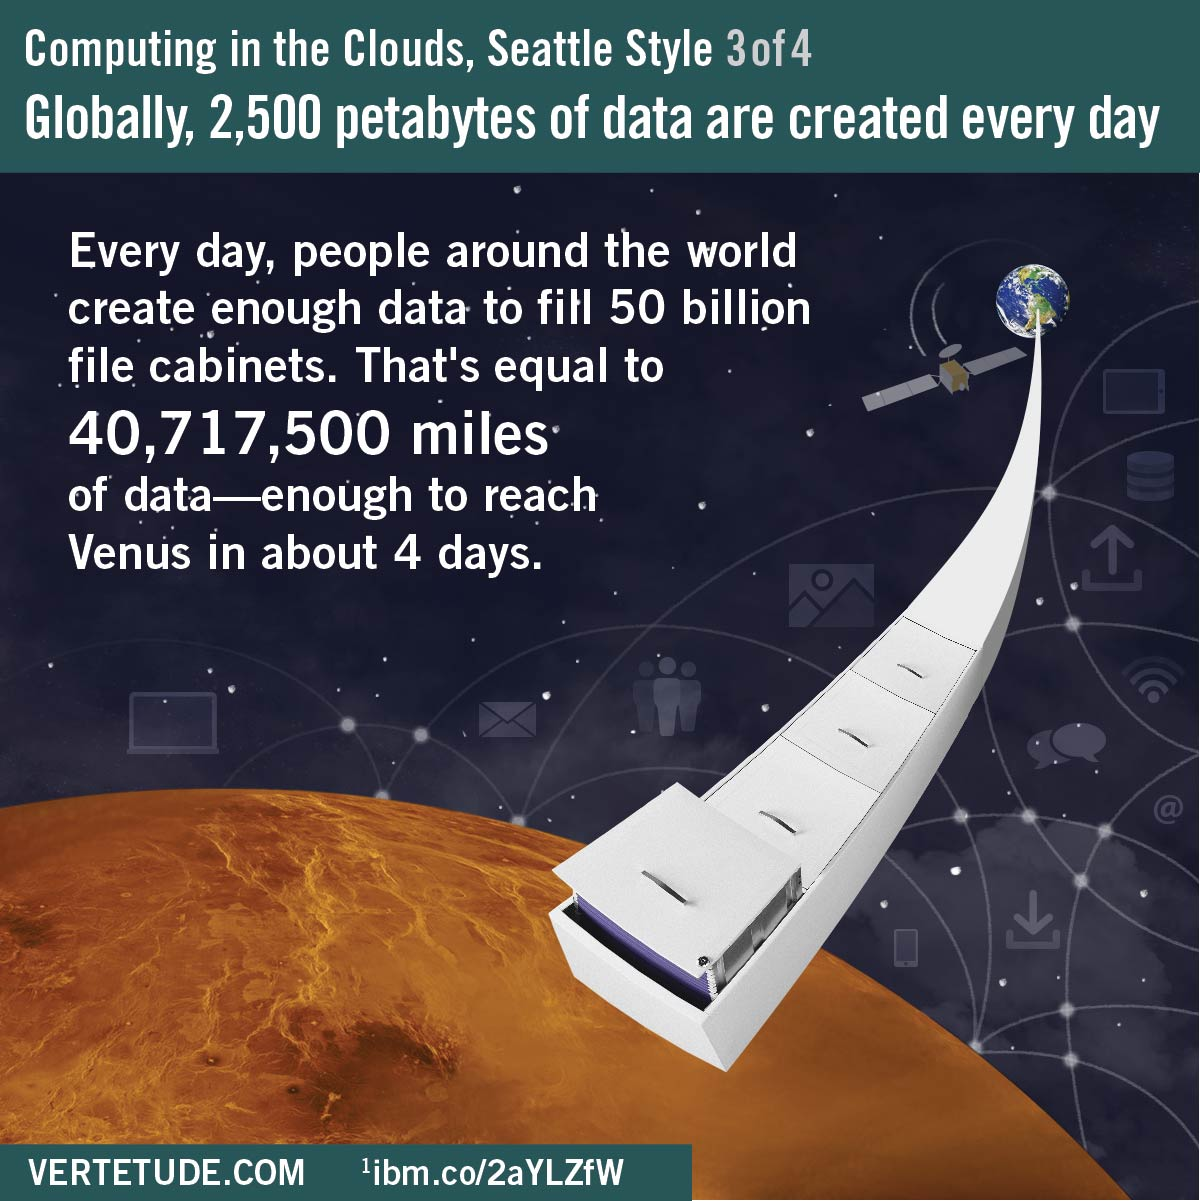 Infographic, cloud computing in Seattle, petabytes of data created around the world each day